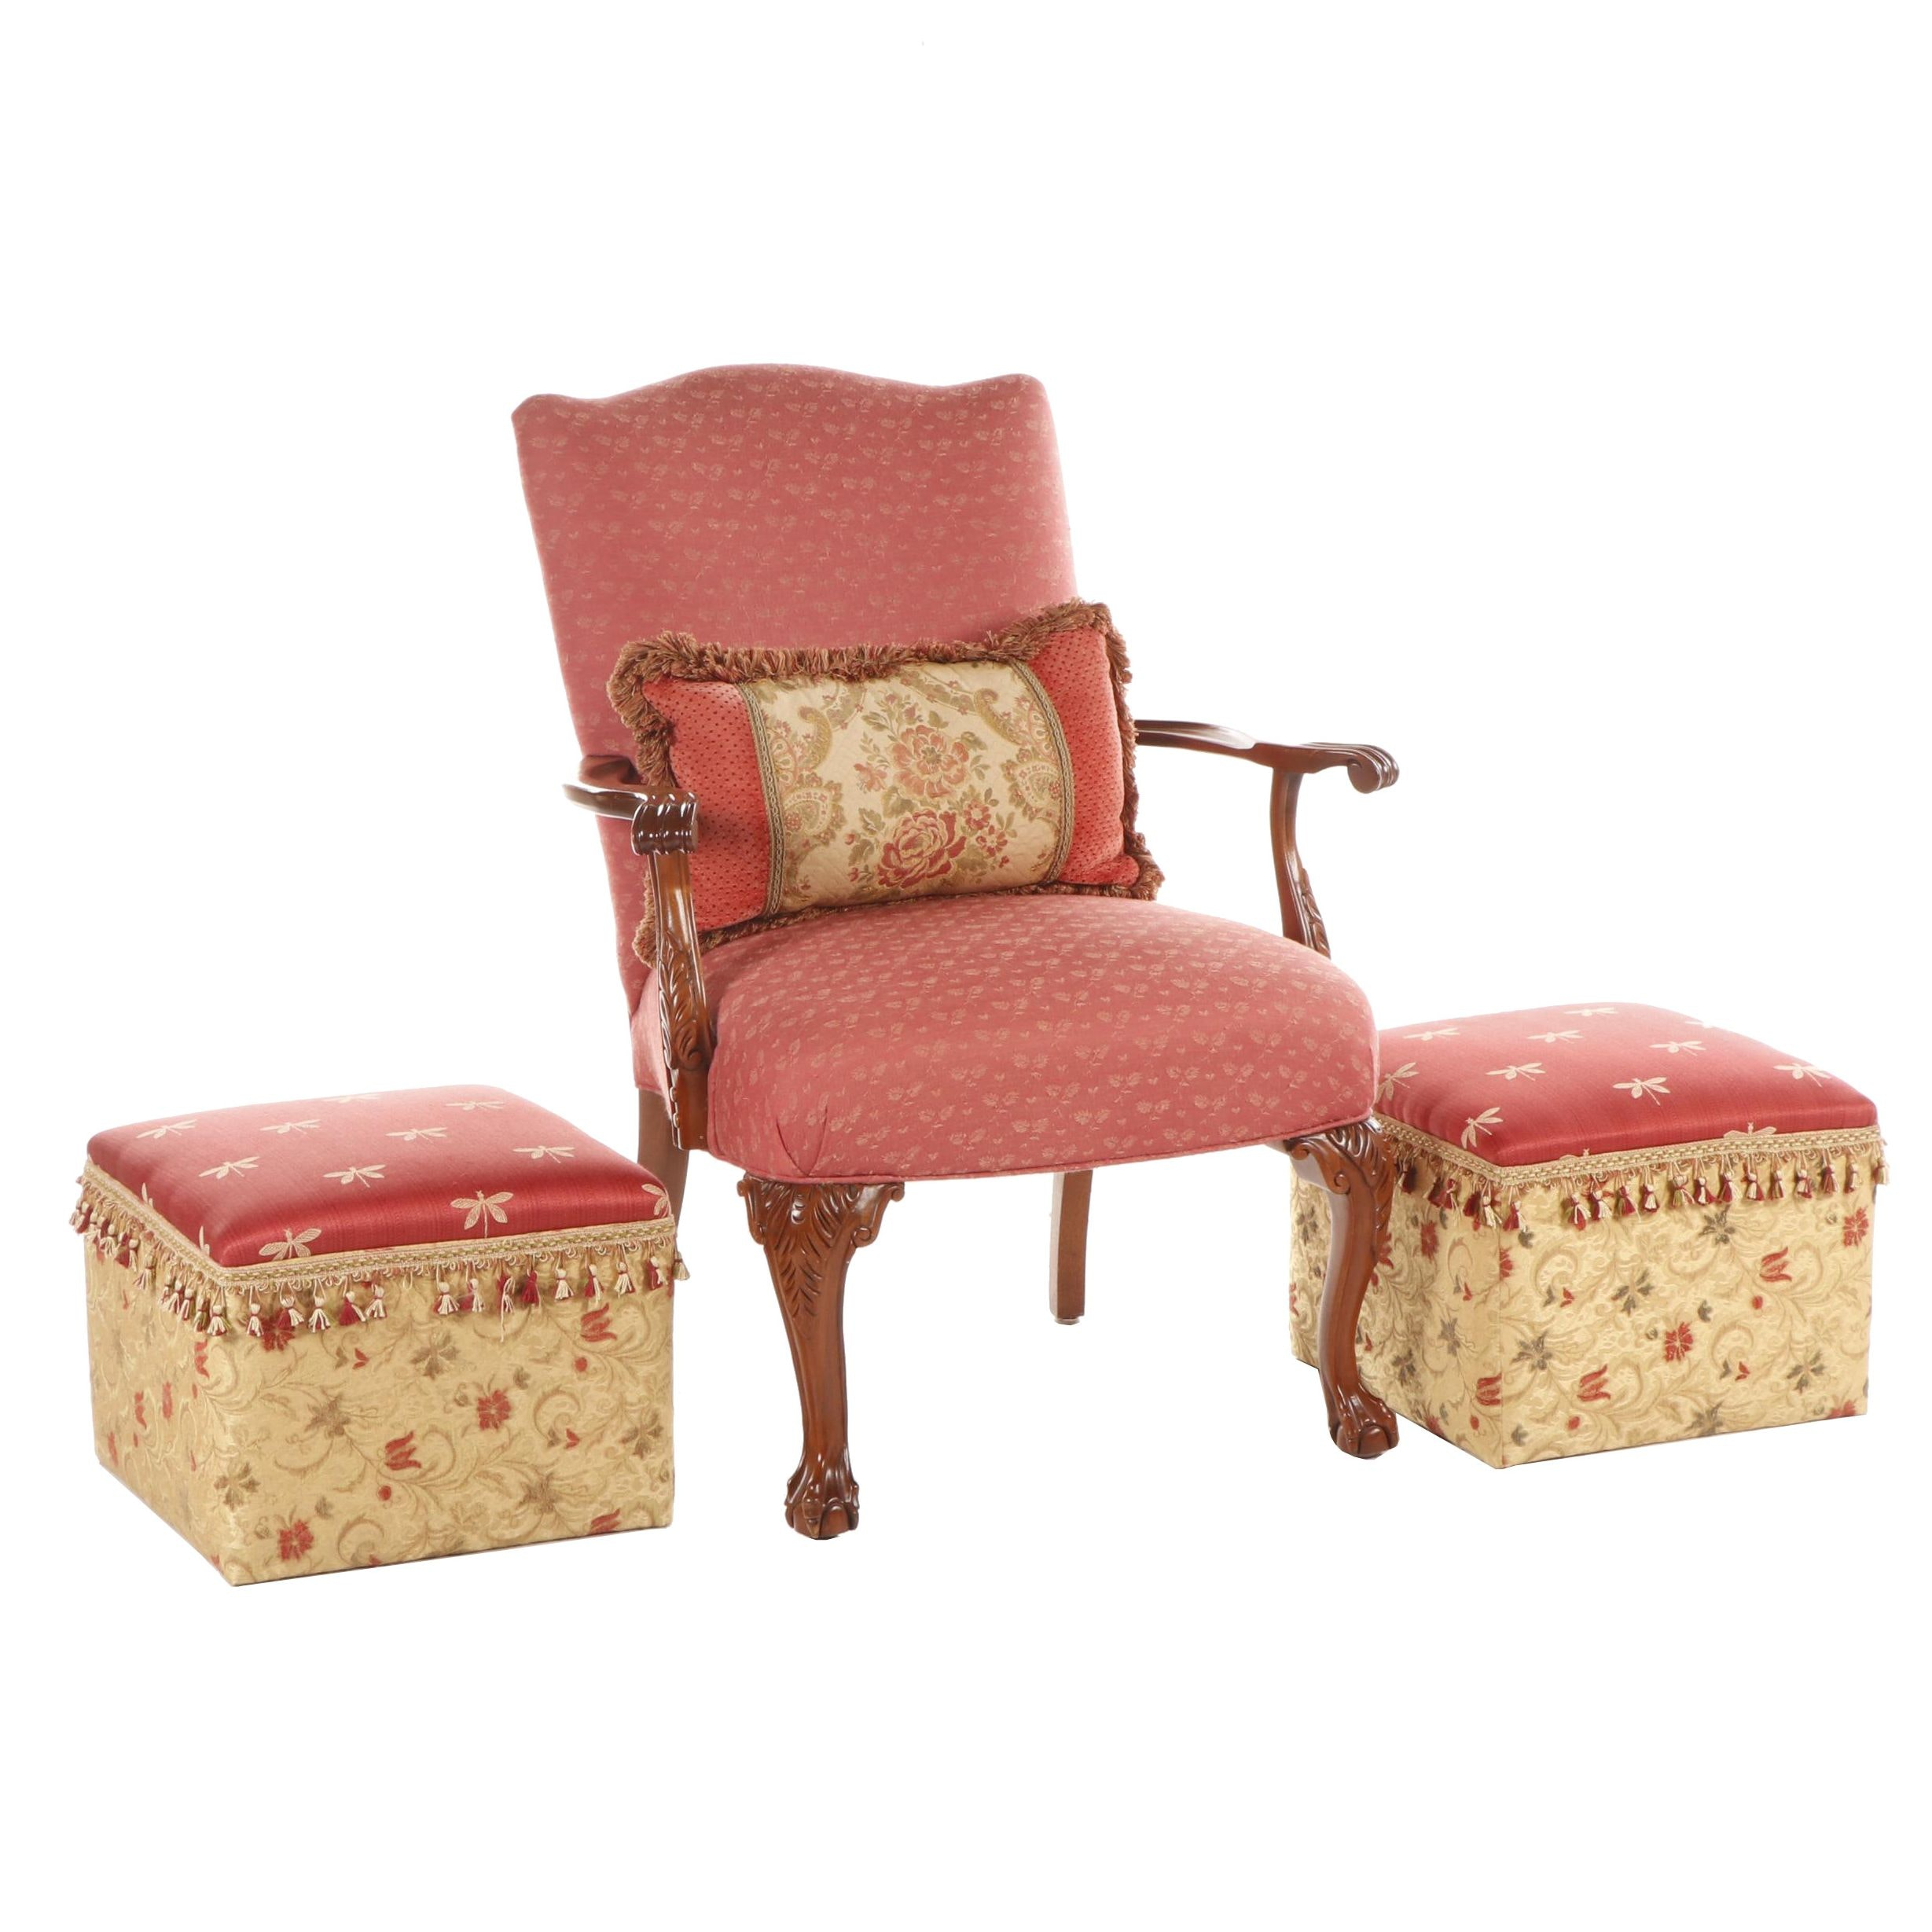 Chippendale Style Ball and Claw Wooden Armchair with Red Upholstery and Ottomans